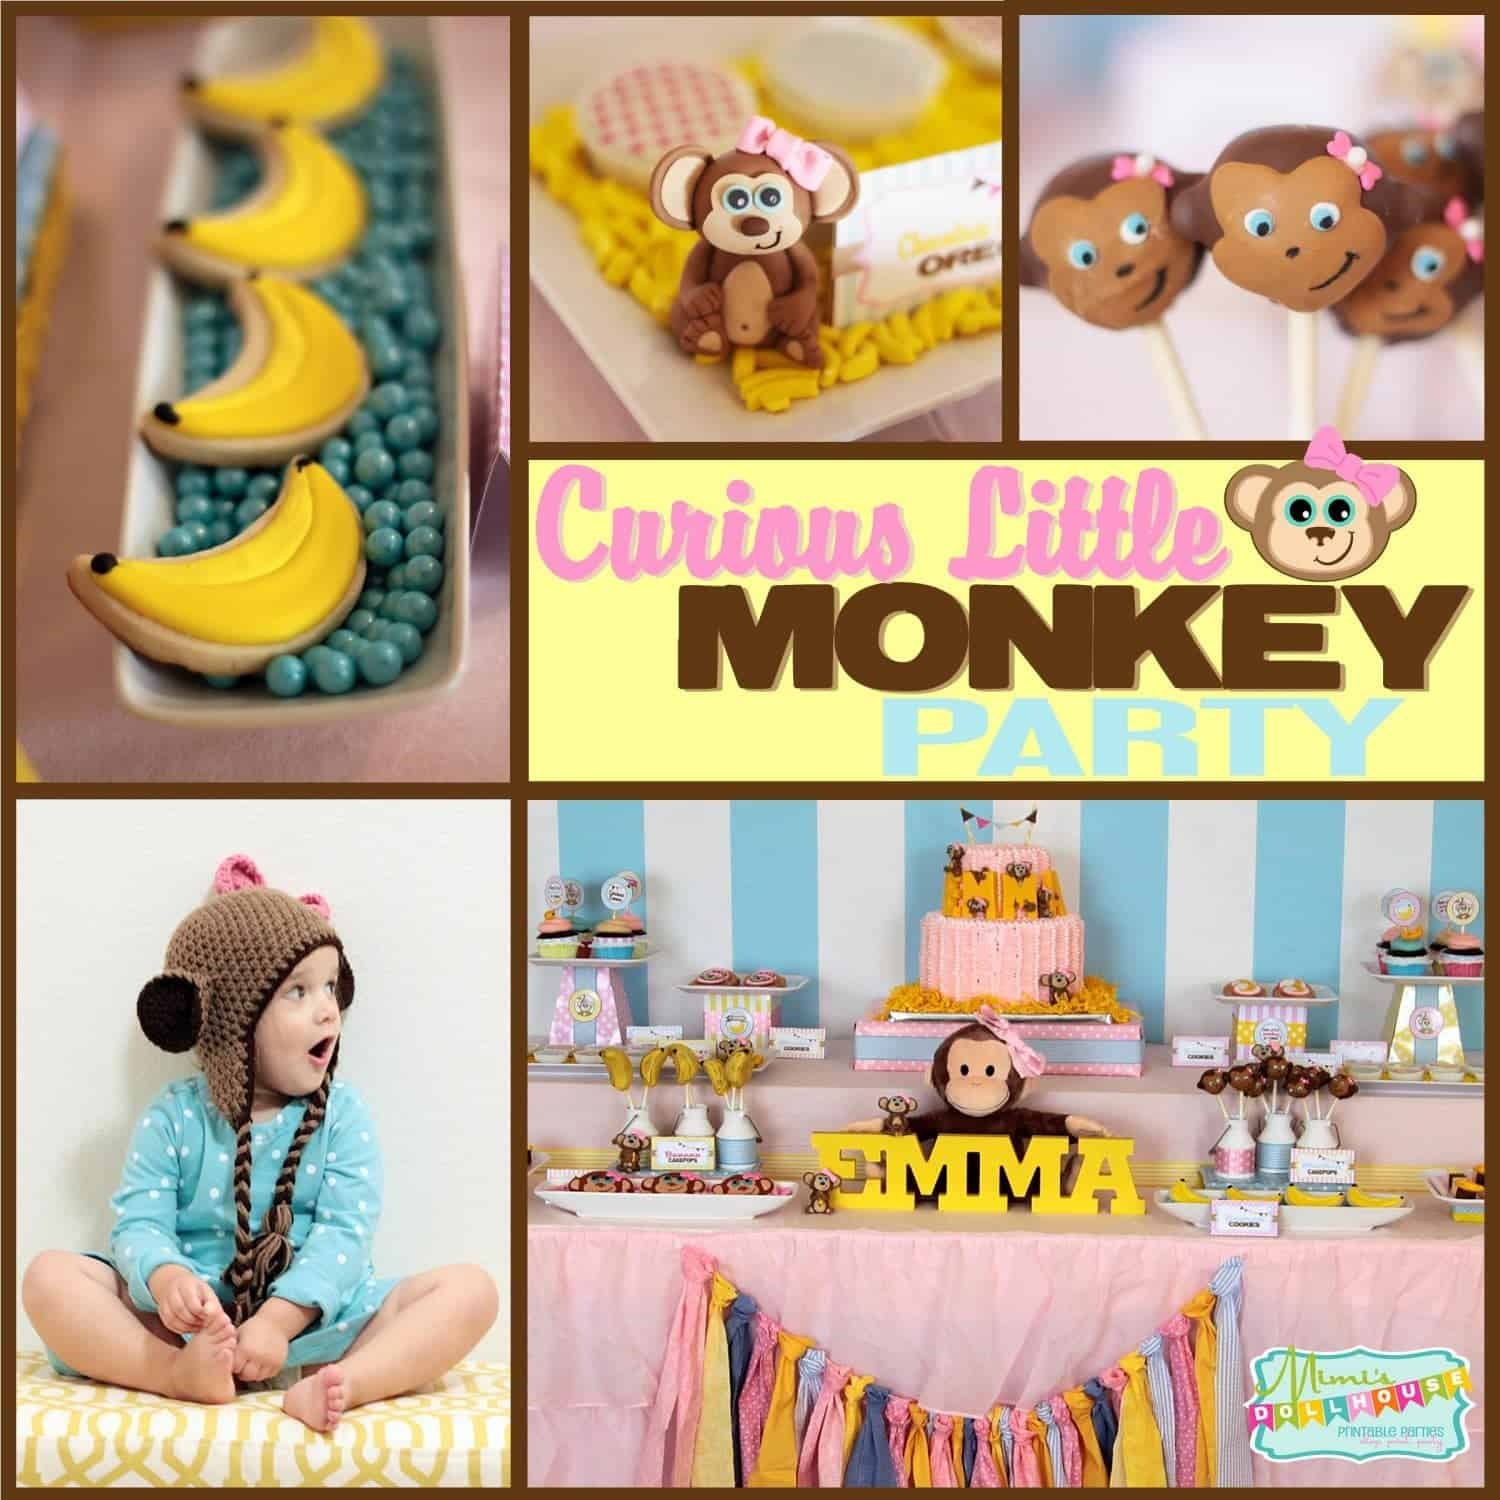 Monkey Party: Curious Emma is Turning Three!